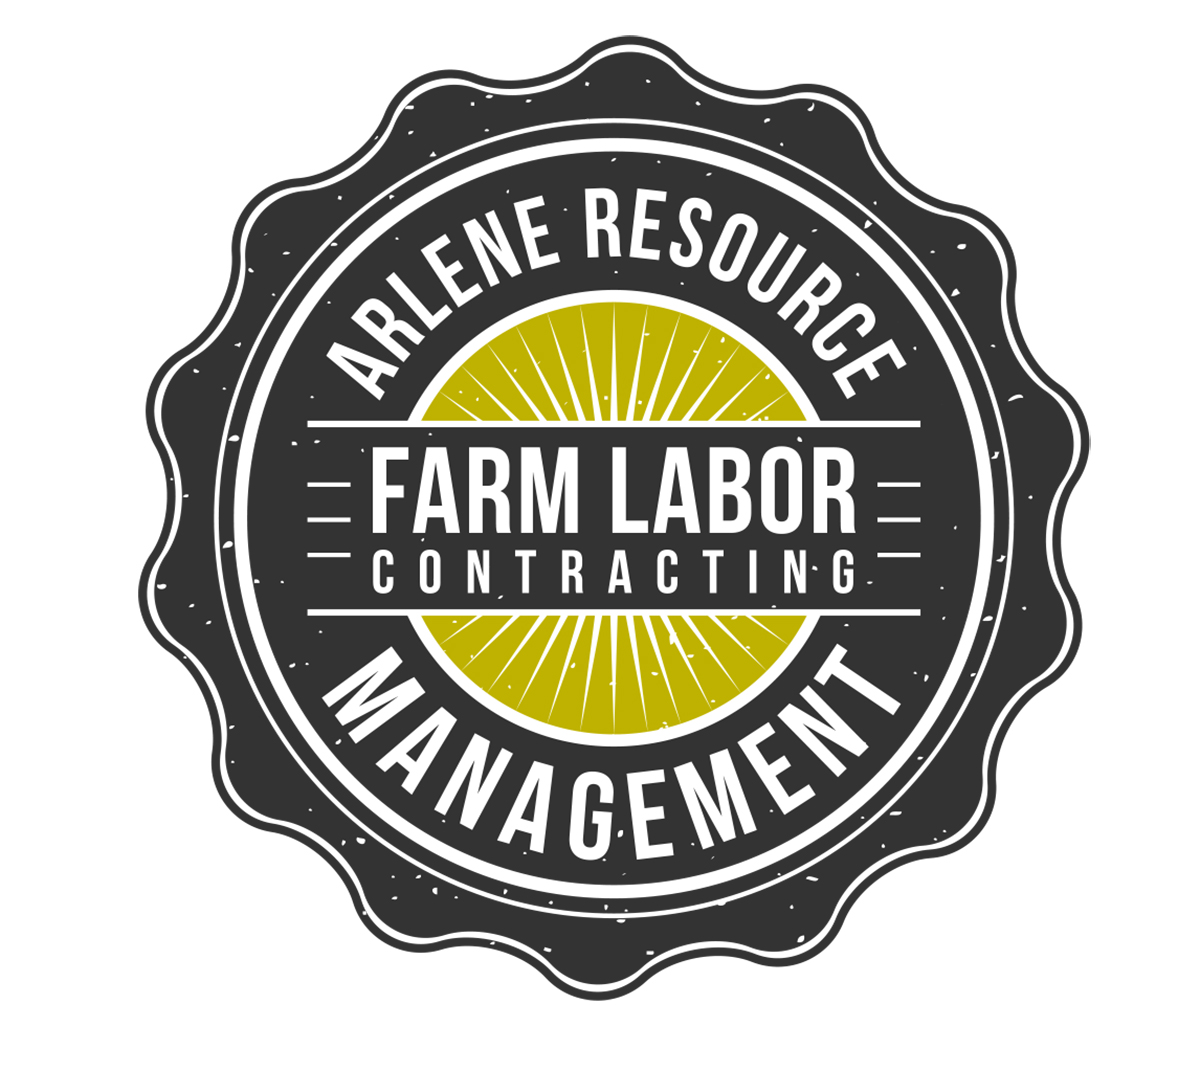 Arlene Resource Management Logo